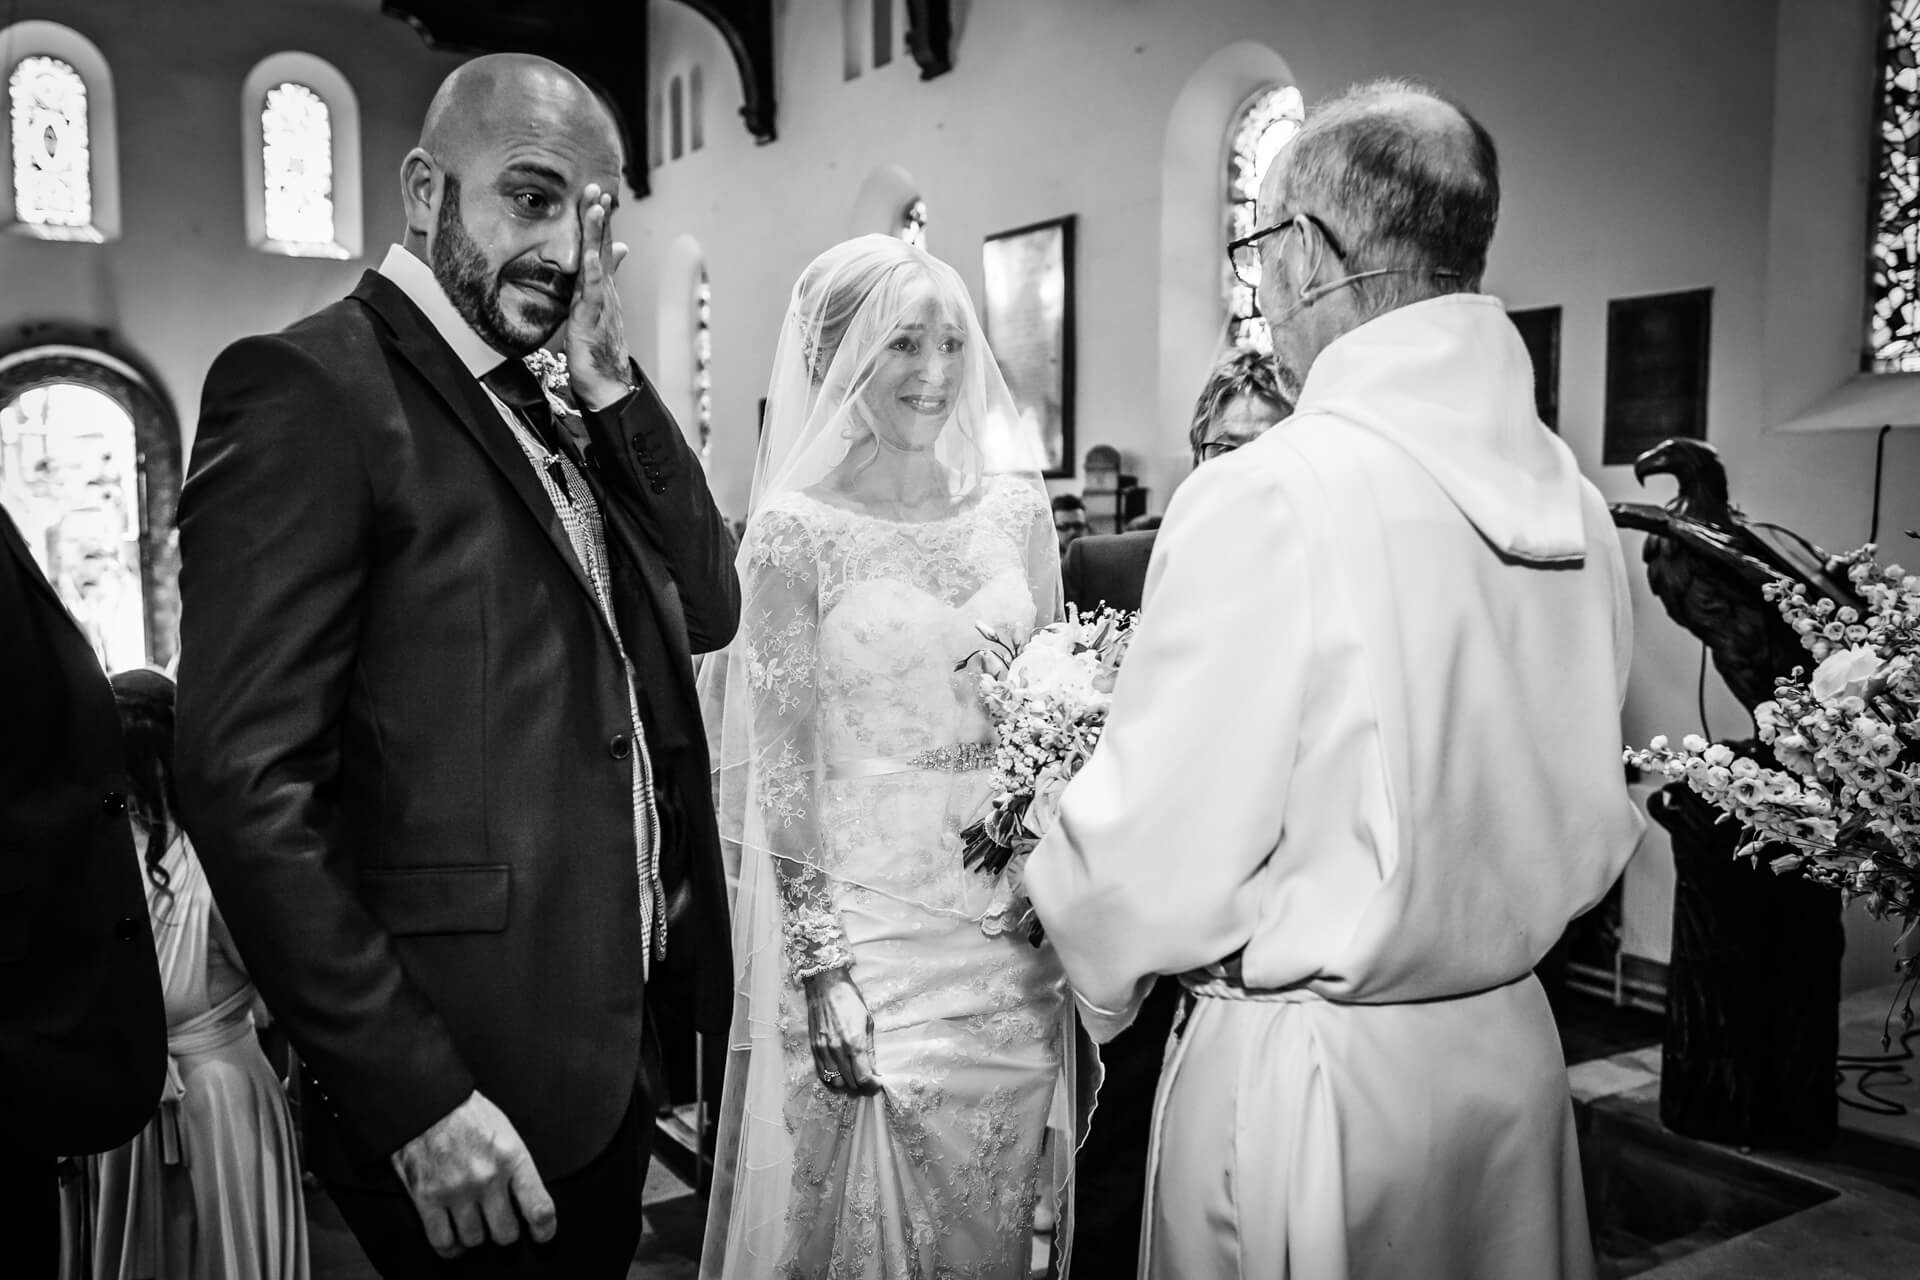 groom shedding a tear during the wedding vows